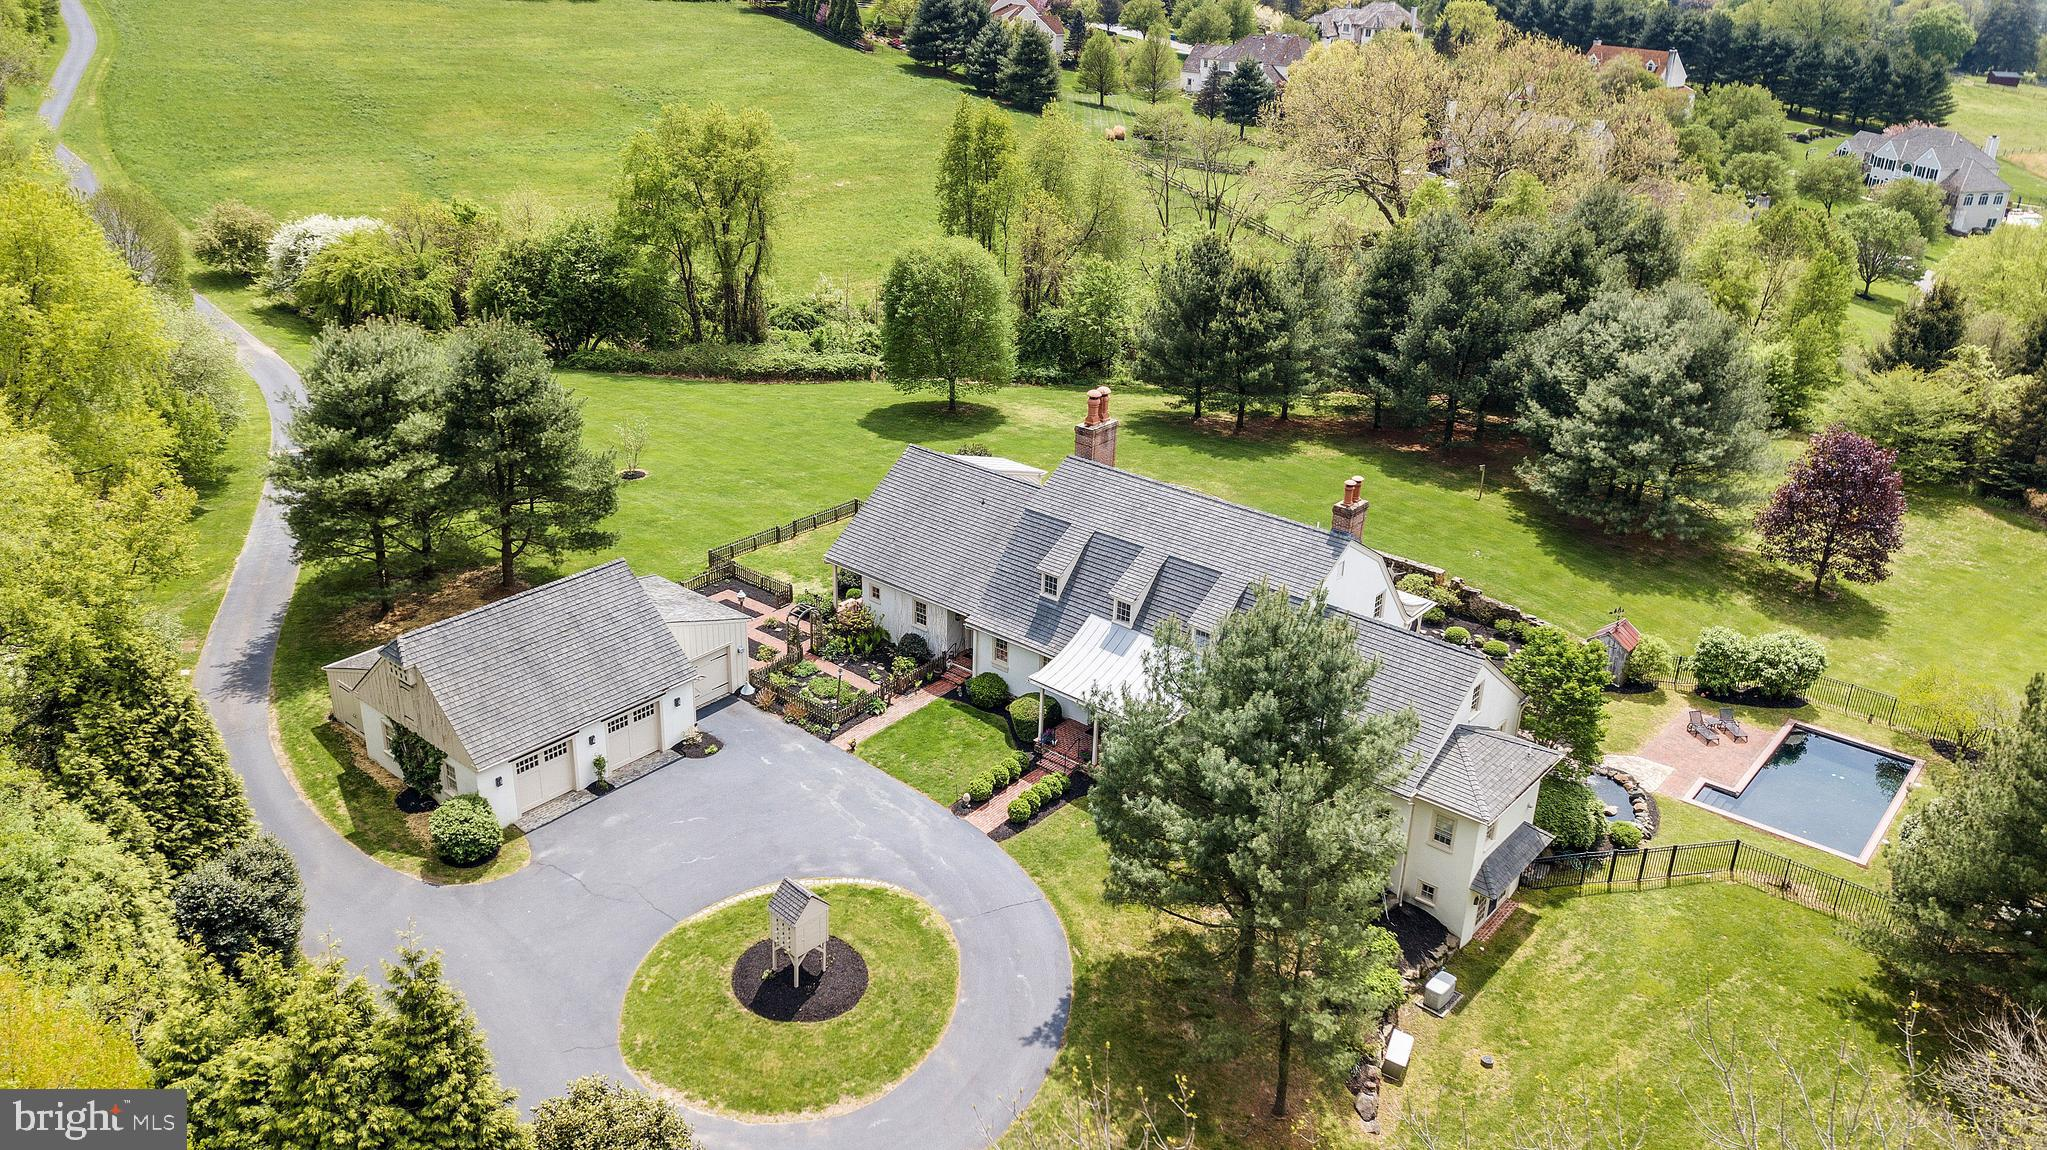 1159 MEETINGHOUSE ROAD, WEST CHESTER, PA 19382